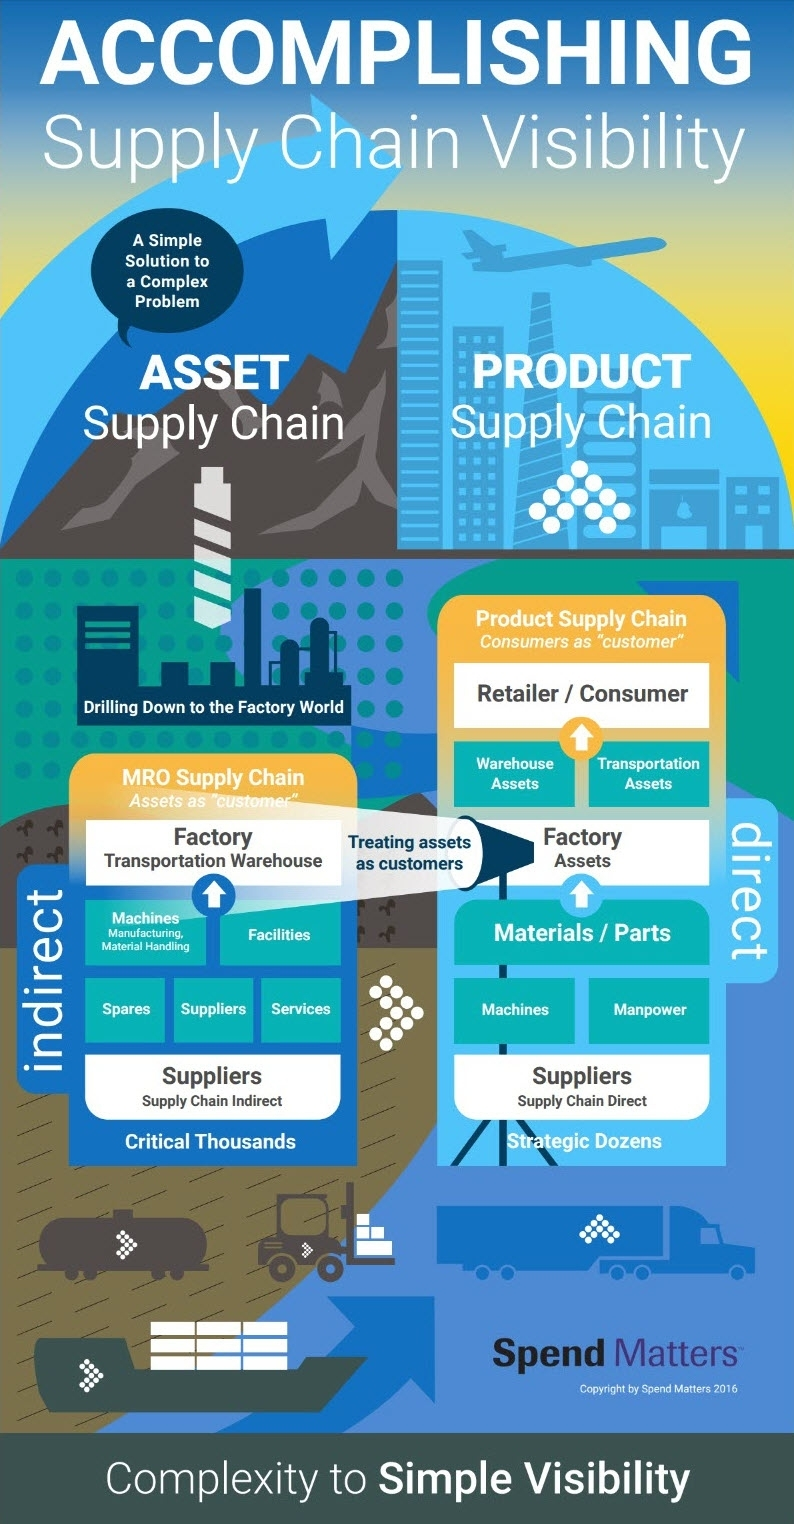 Accomplishing Supply Chain Visibility